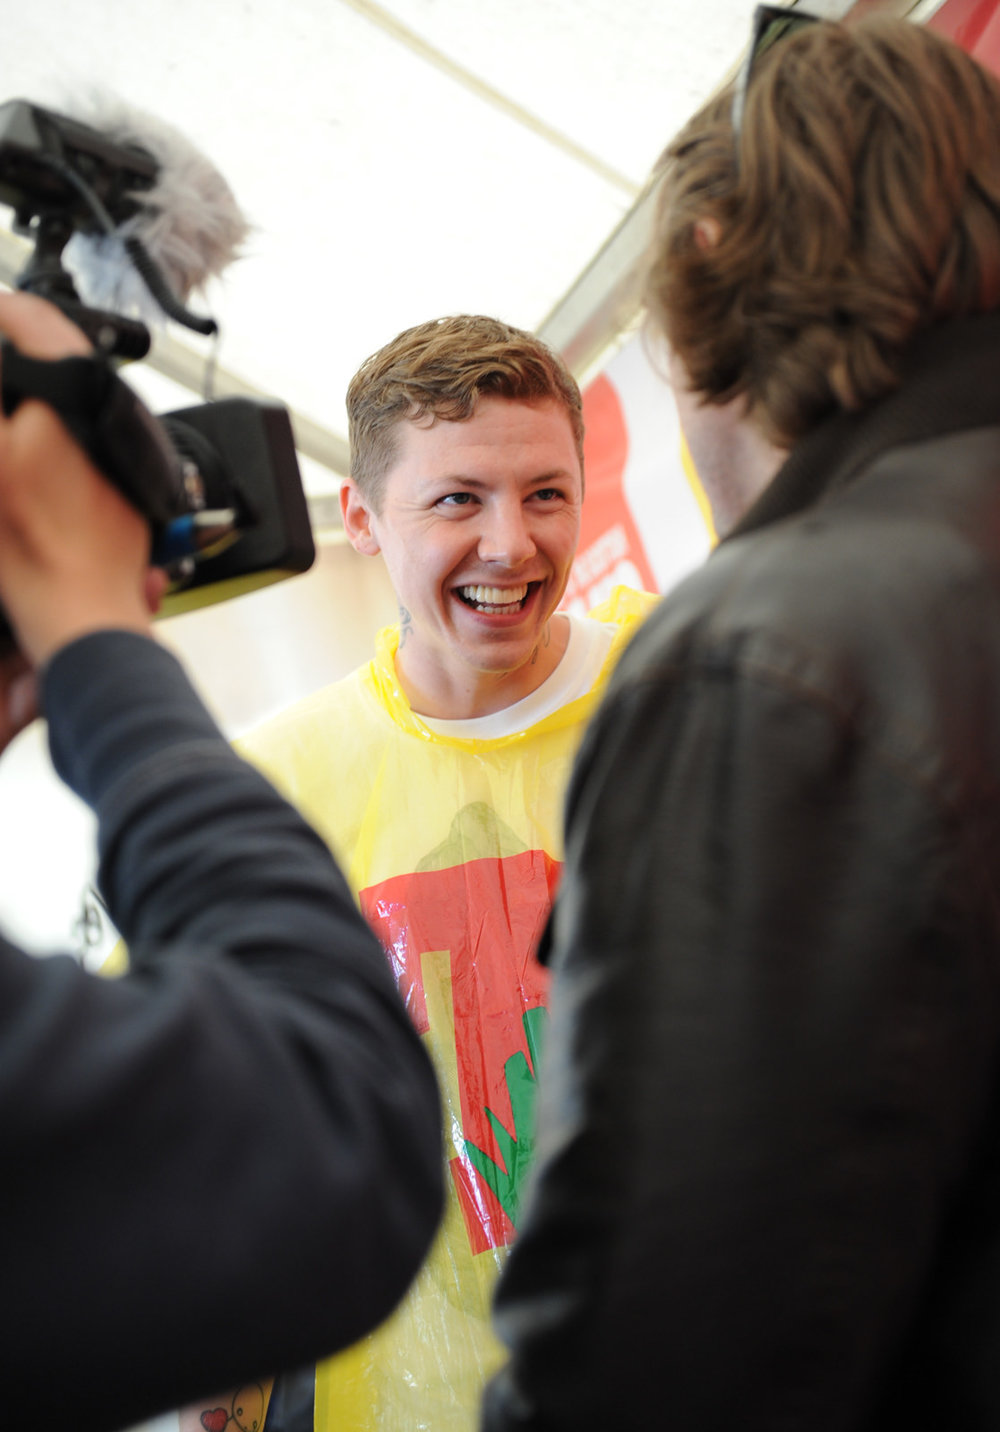 tinthepark-interview-bbc-professor-green-scotland.jpg